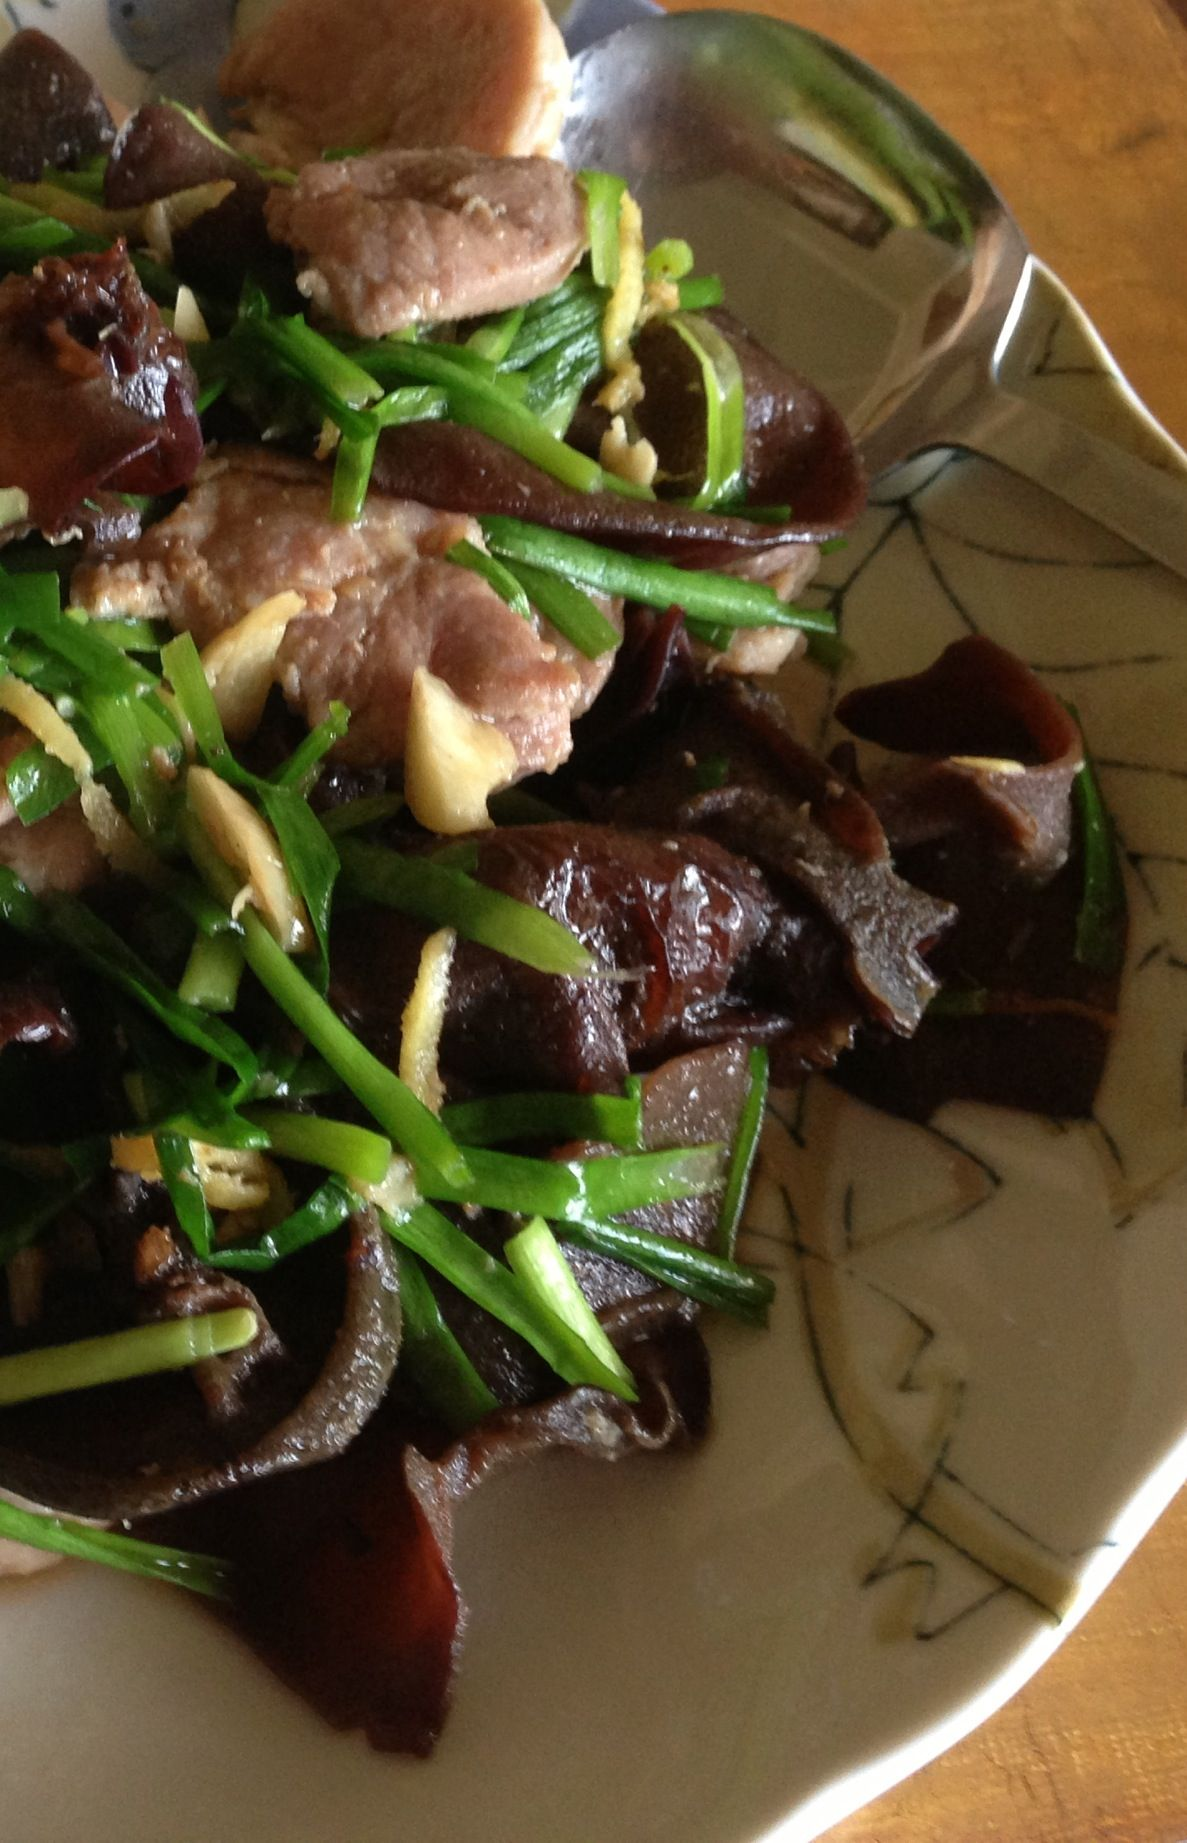 Pork and Tree Fungus Pan-Fry